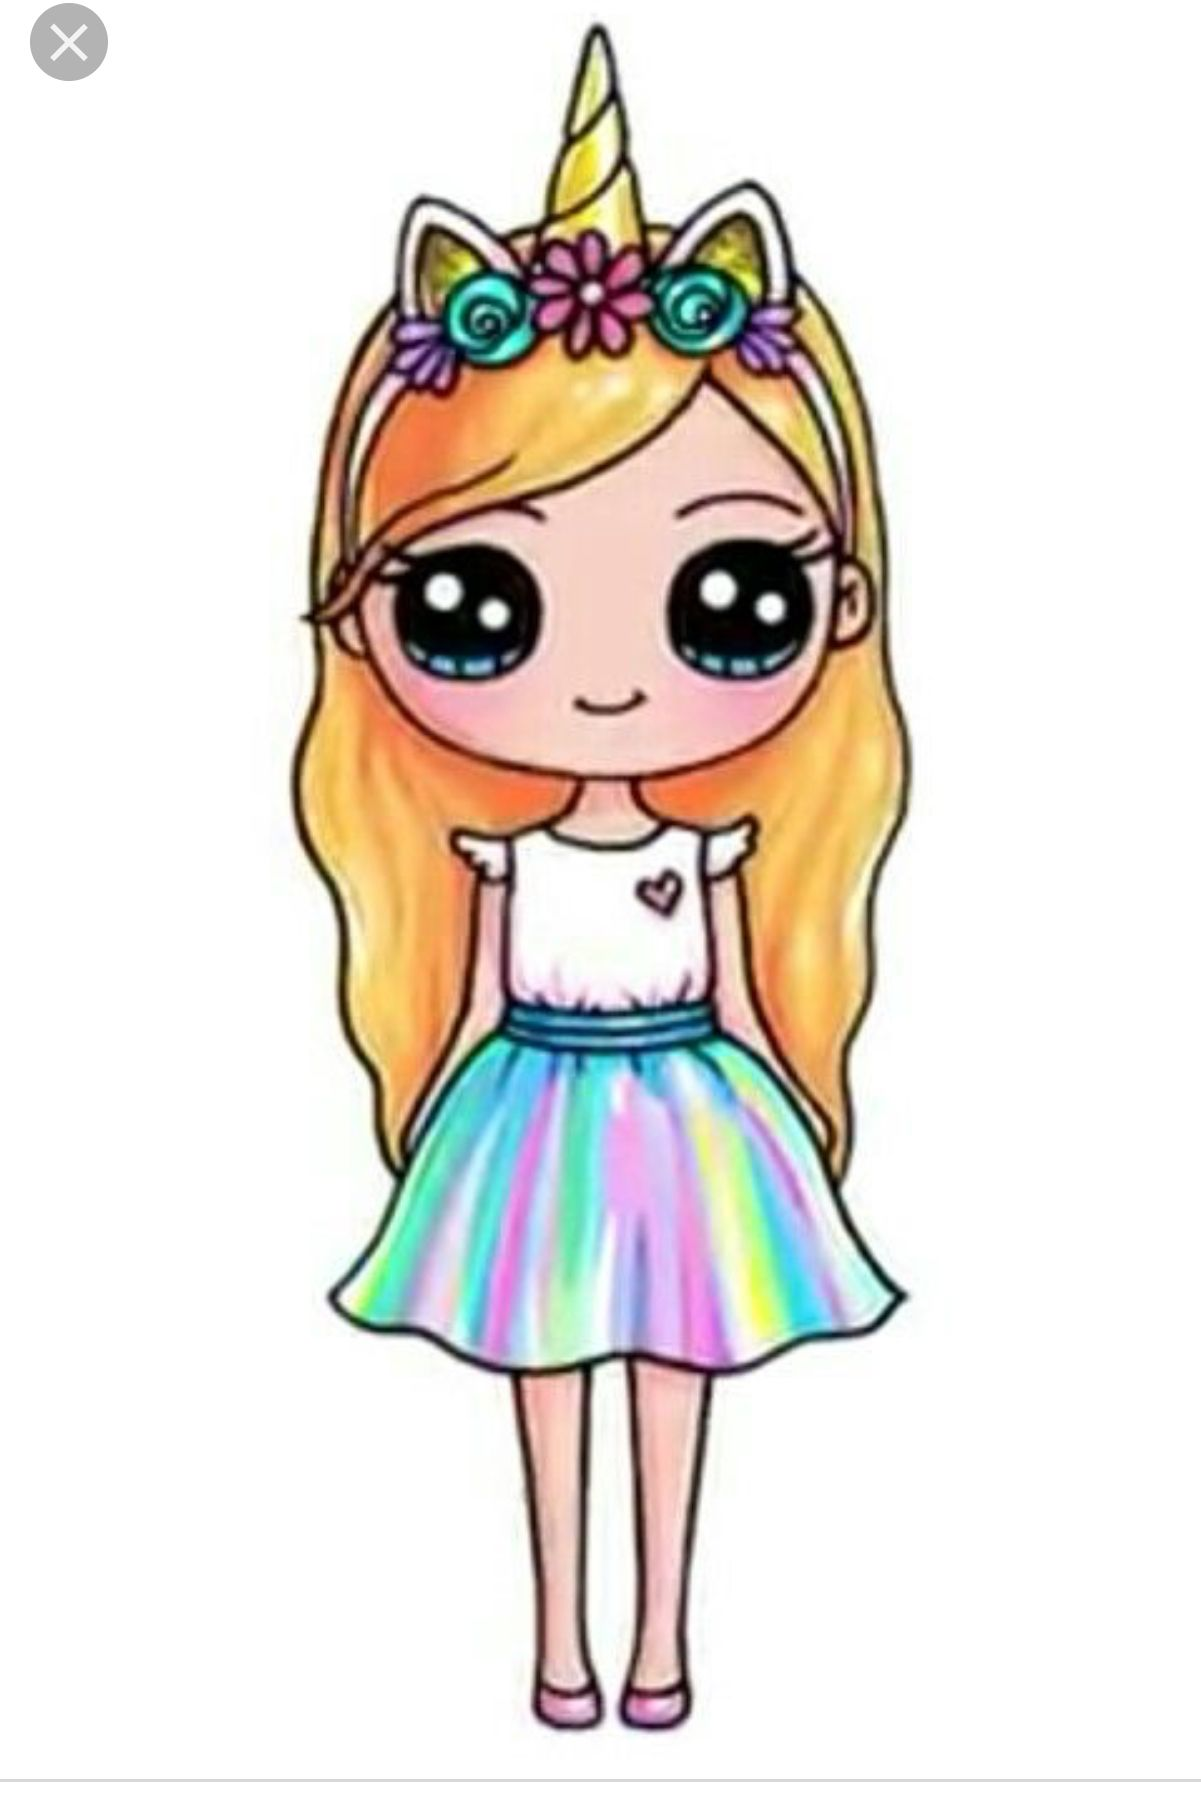 Pin By Alejandra Salazar On Brownie Ideas Cute Kawaii Drawings Kawaii Girl Drawings Cute Drawing Images